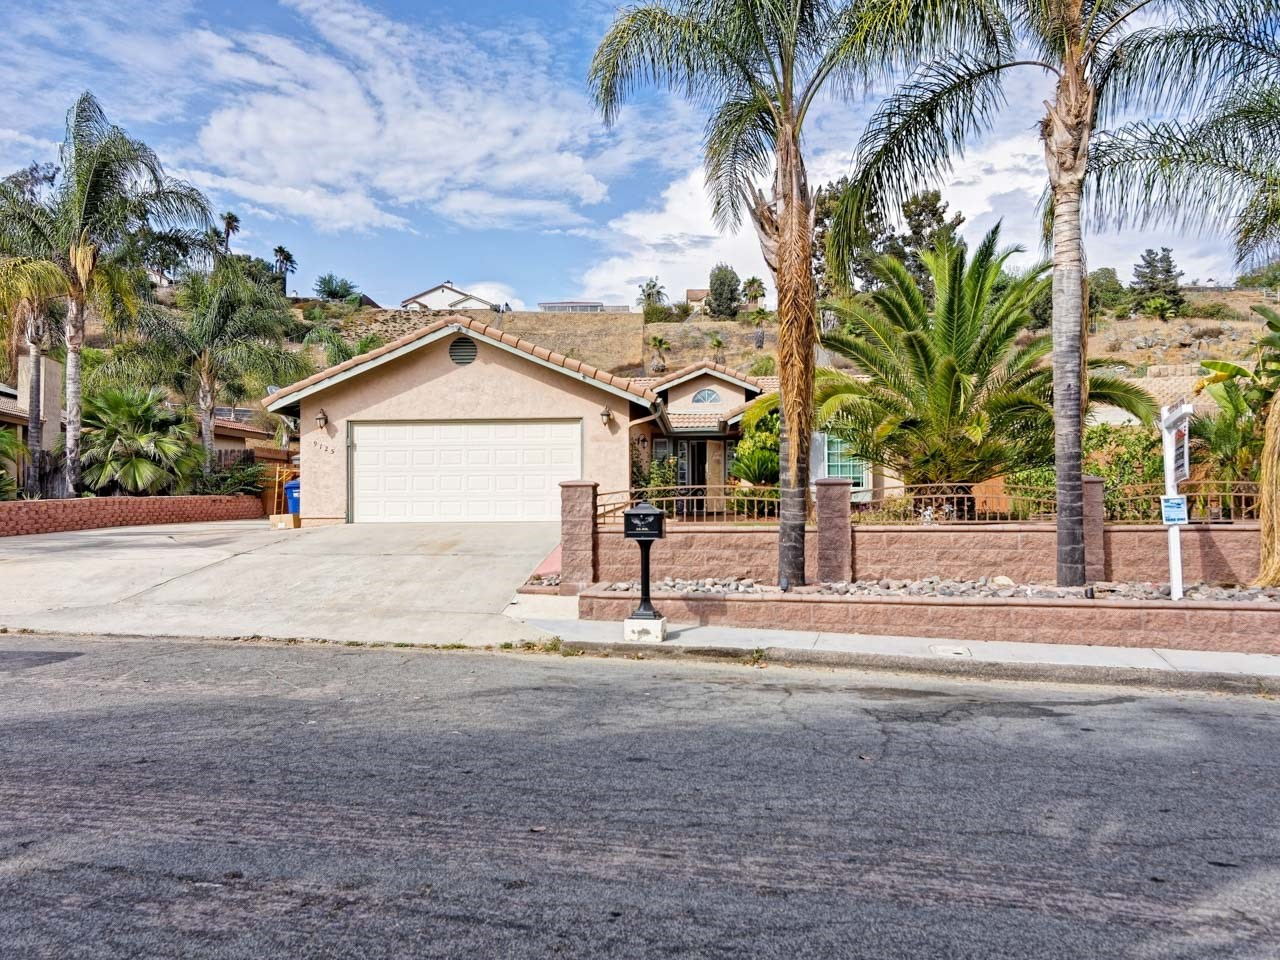 9125 Canyon Park Terrace, Santee, CA 92071